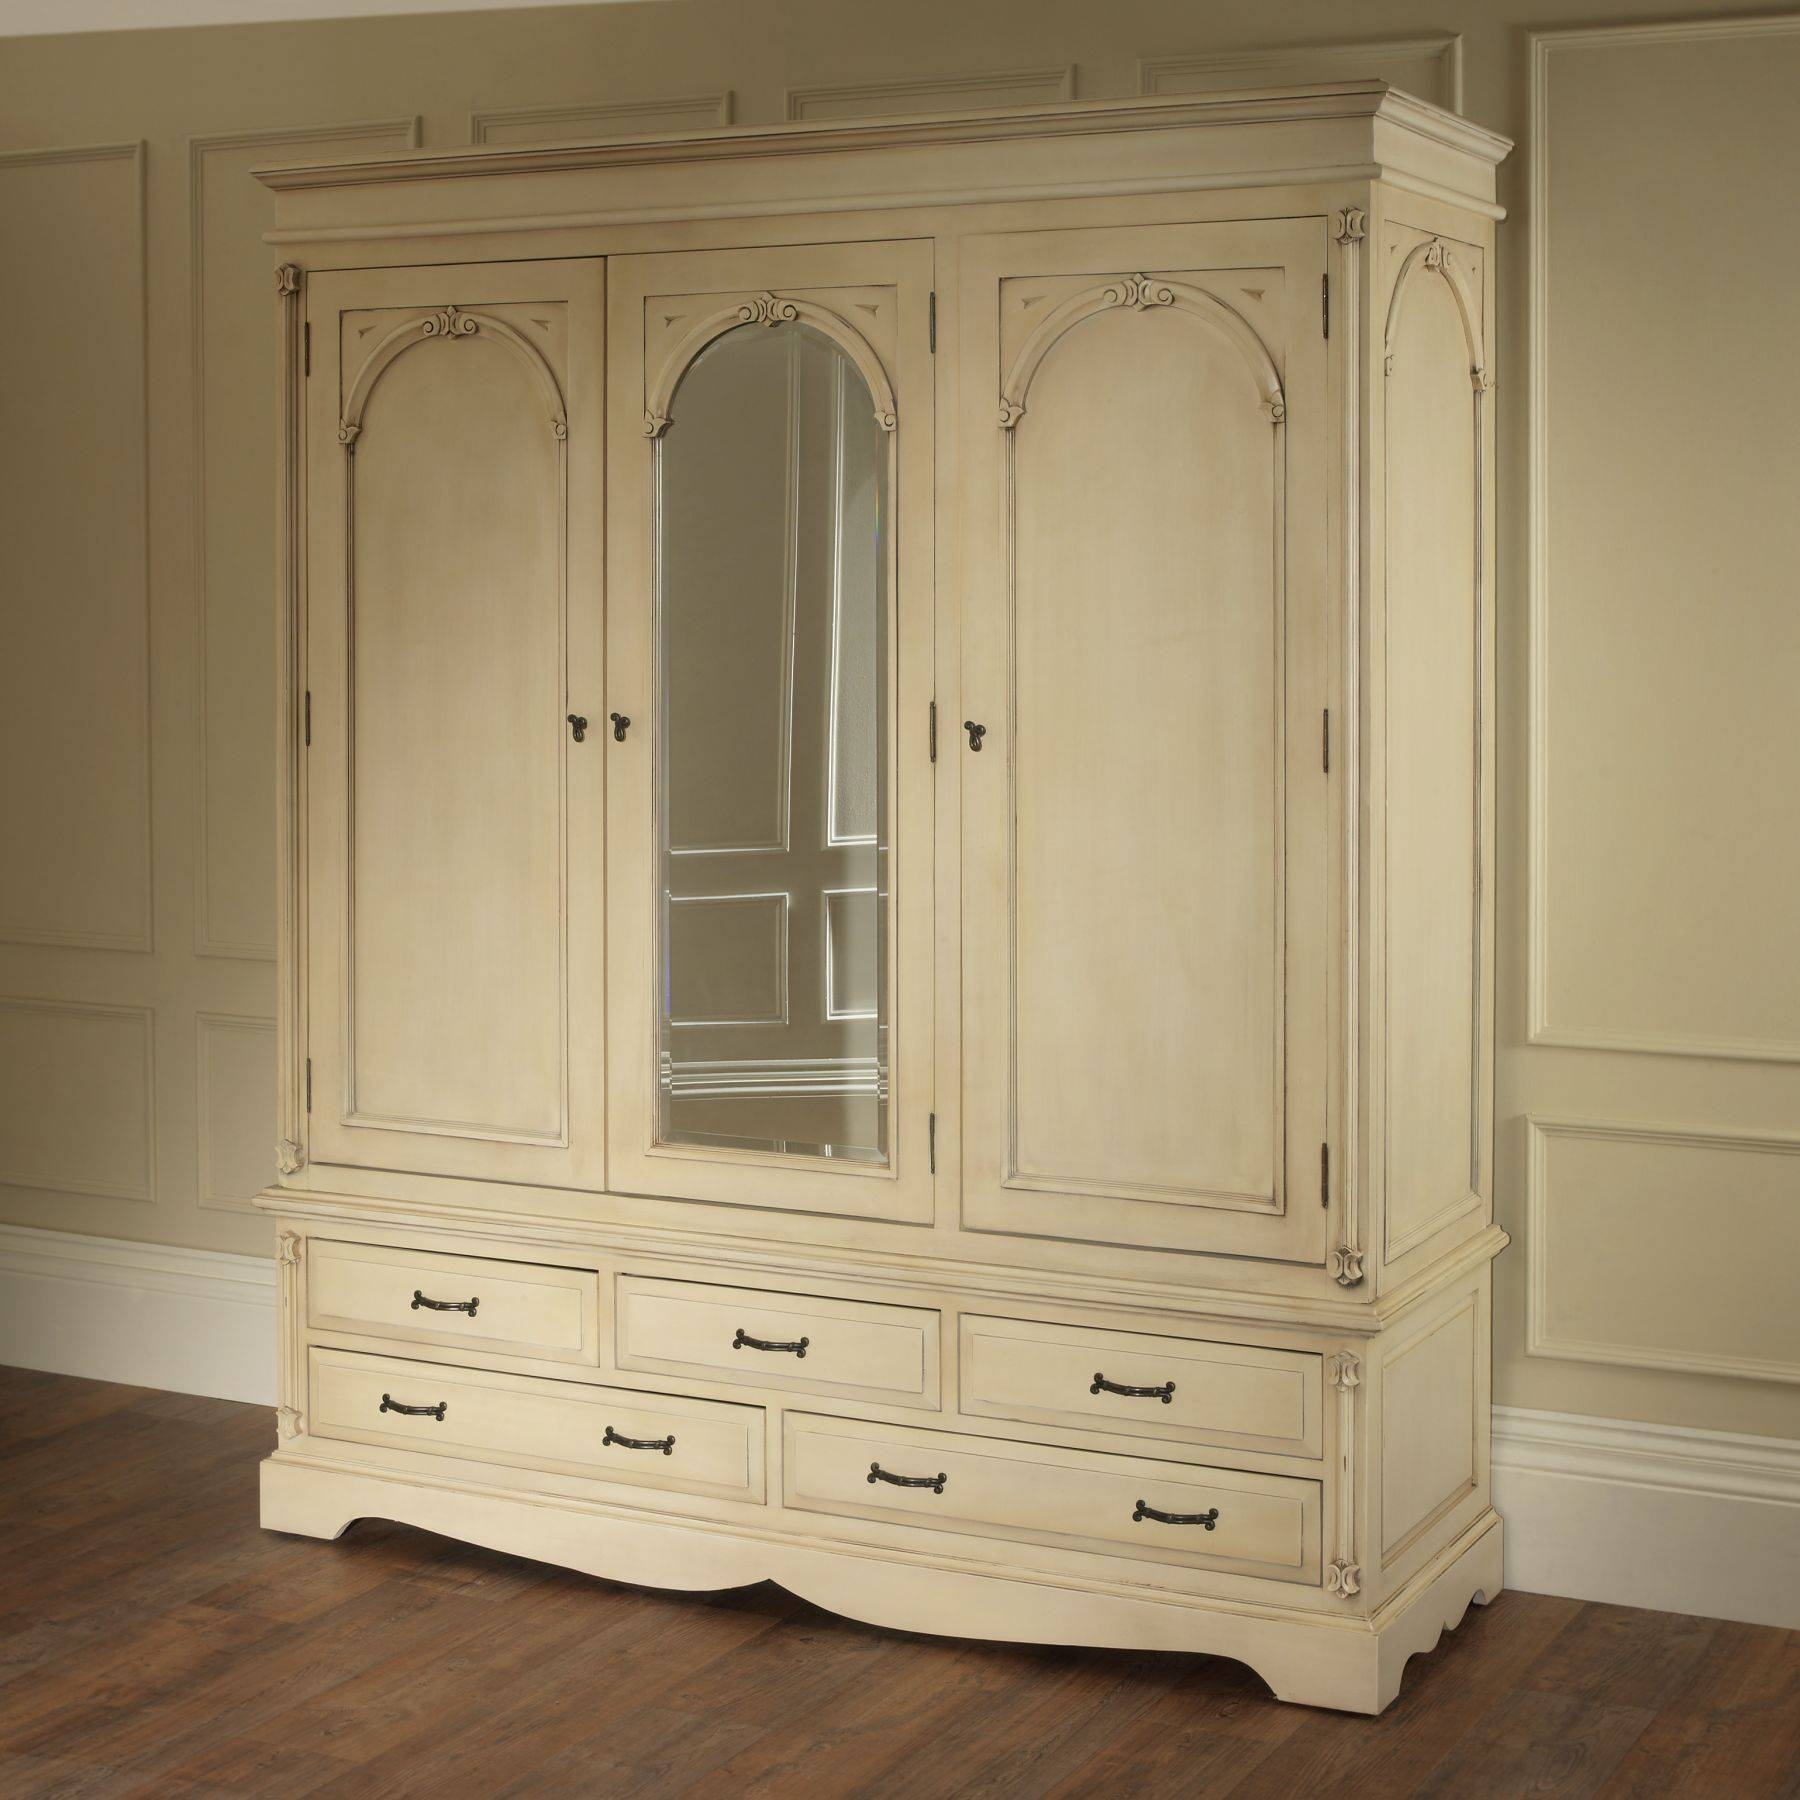 Victorian Antique French Wardrobe Works Wonderful Alongside Our throughout Victorian Style Wardrobes (Image 12 of 15)